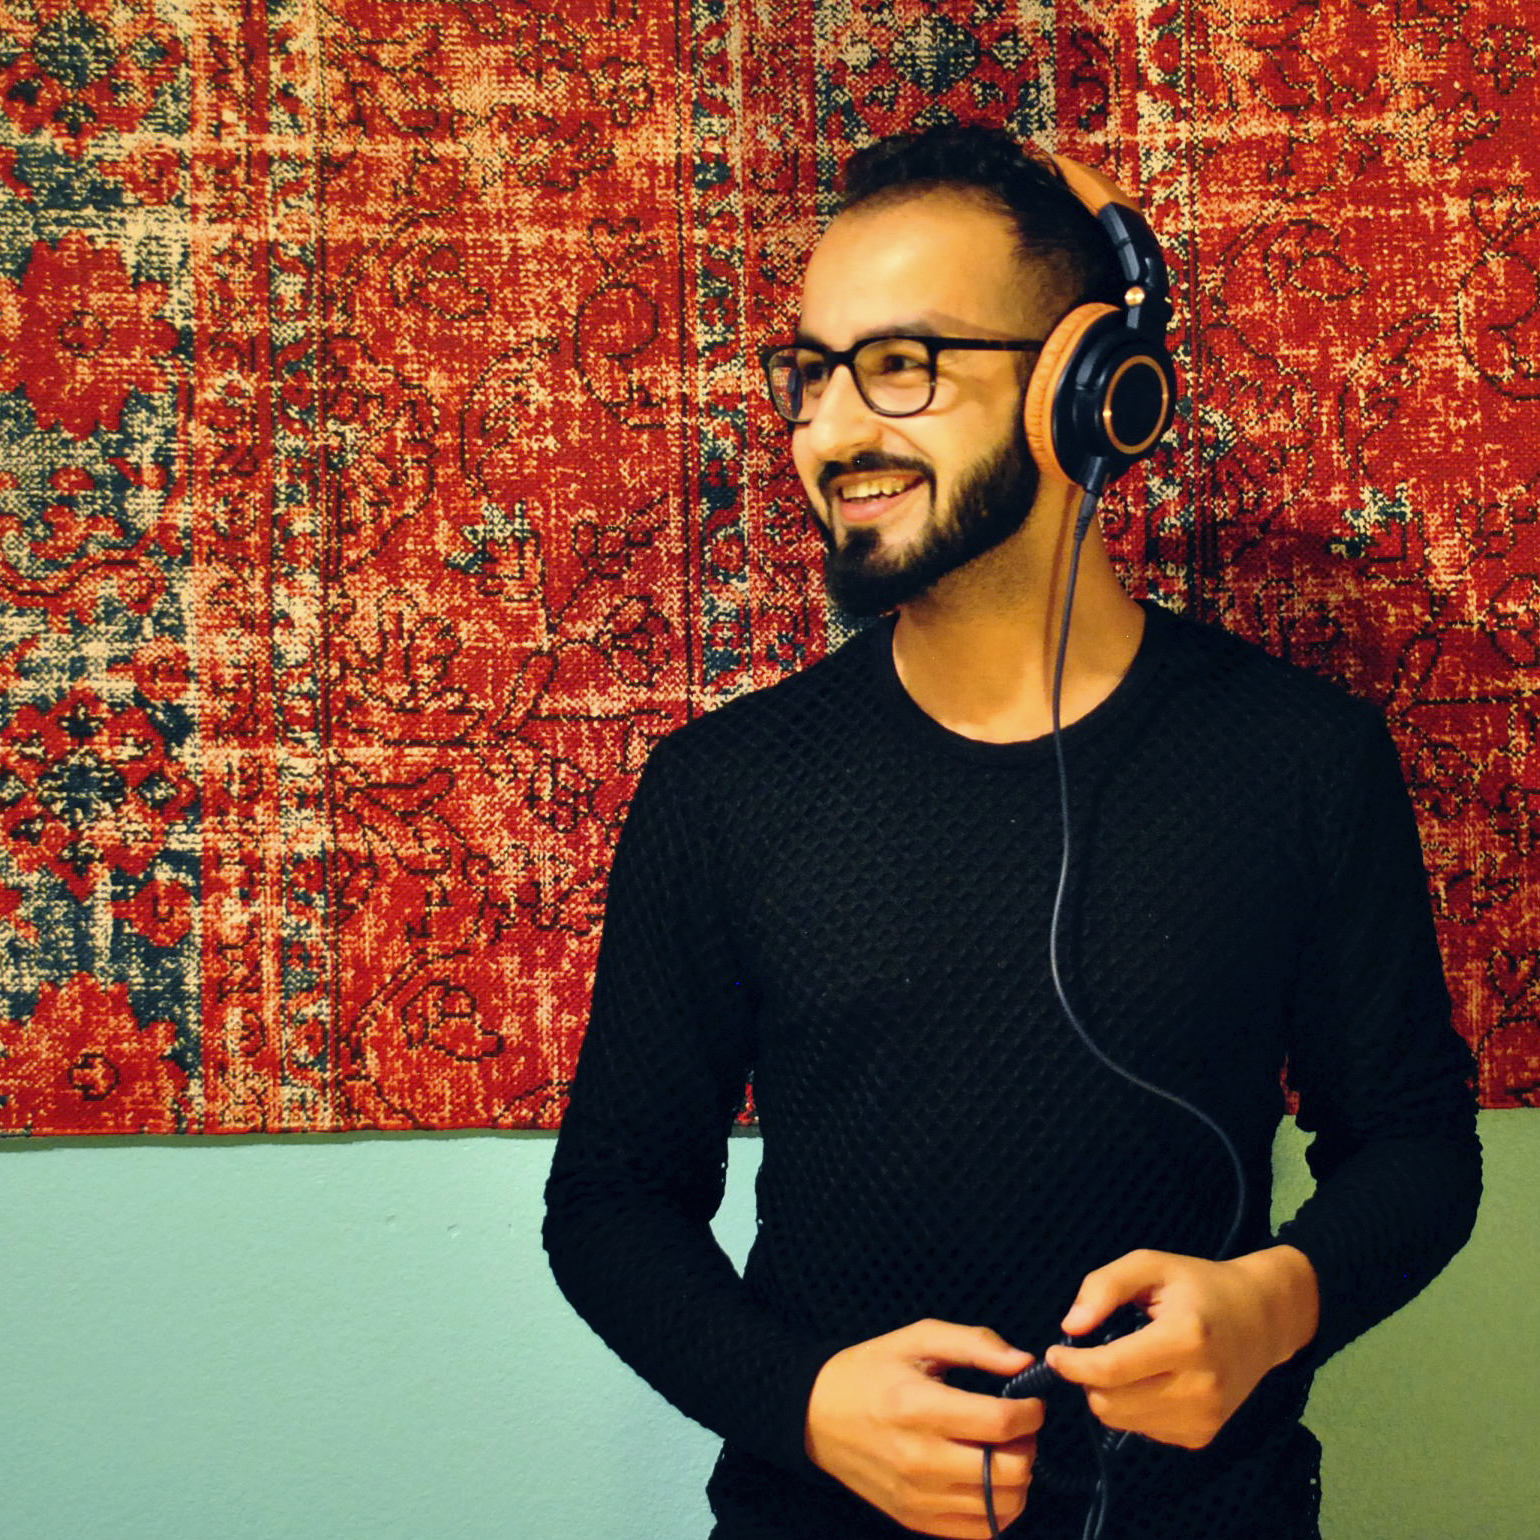 DJ Ahmed was born in Iraq and survived the Gulf War of 1990, the Iraqi uprising in 1991, and lived through the US imposed sanctions until 1993. DJ Ahmed has been a DJ for 12 years playing international music from Iraq and all Arab countries as well as India, Pakistan, Afghanistan, Iran, and more.